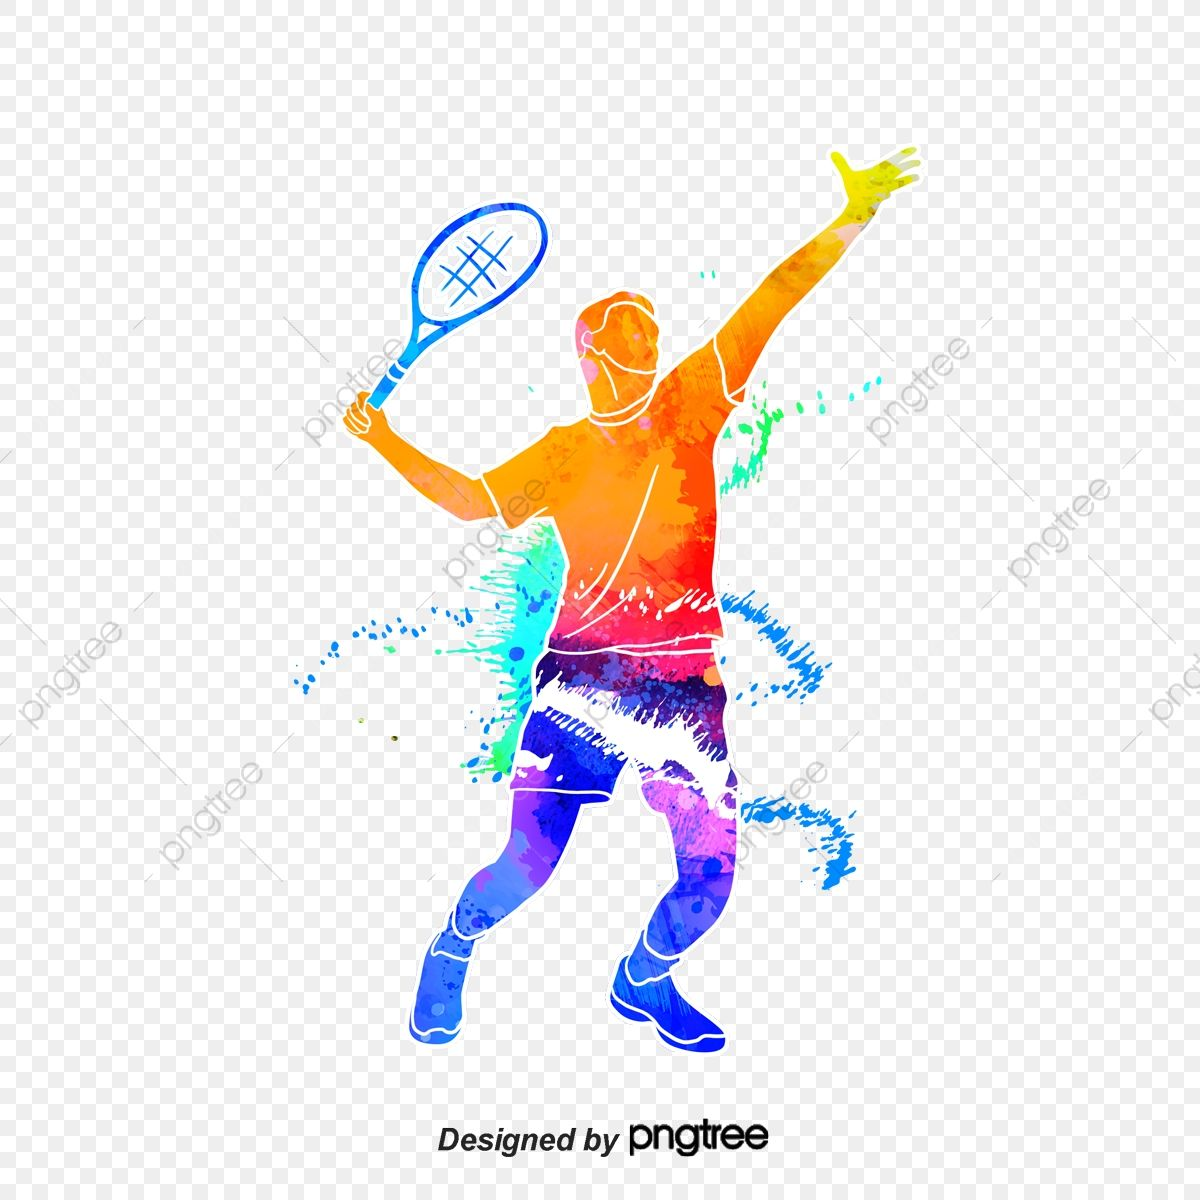 Silhouette Of Creative Tennis Players Multicolored Character Sports Png Transparent Clipart Image And Psd File For Free Download In 2020 Tennis Players Sports Images American Football Players